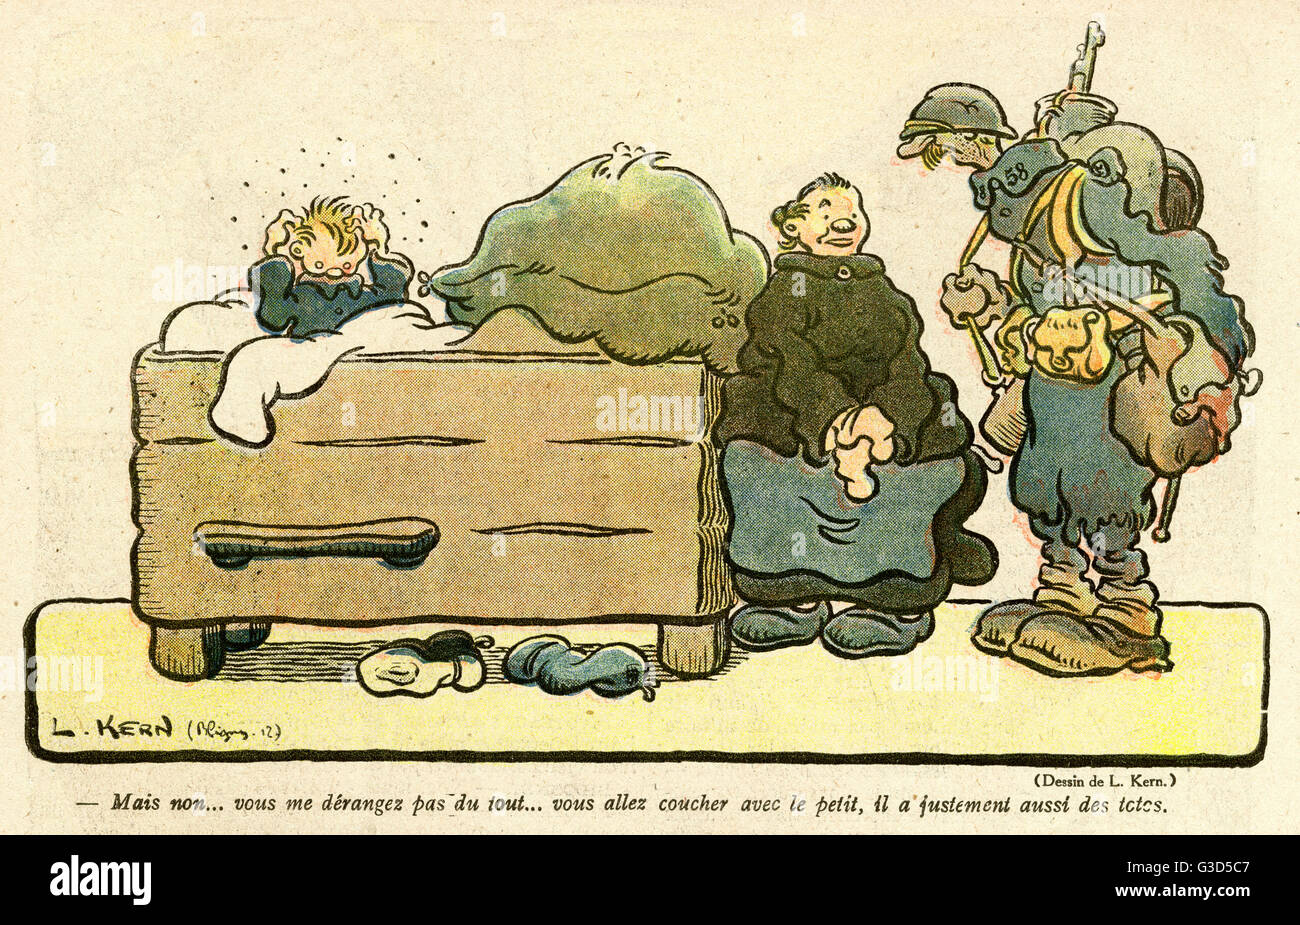 Cartoon, A soldier's billet. He is staying in a woman's house and will be sleeping with her little boy, - Stock Image